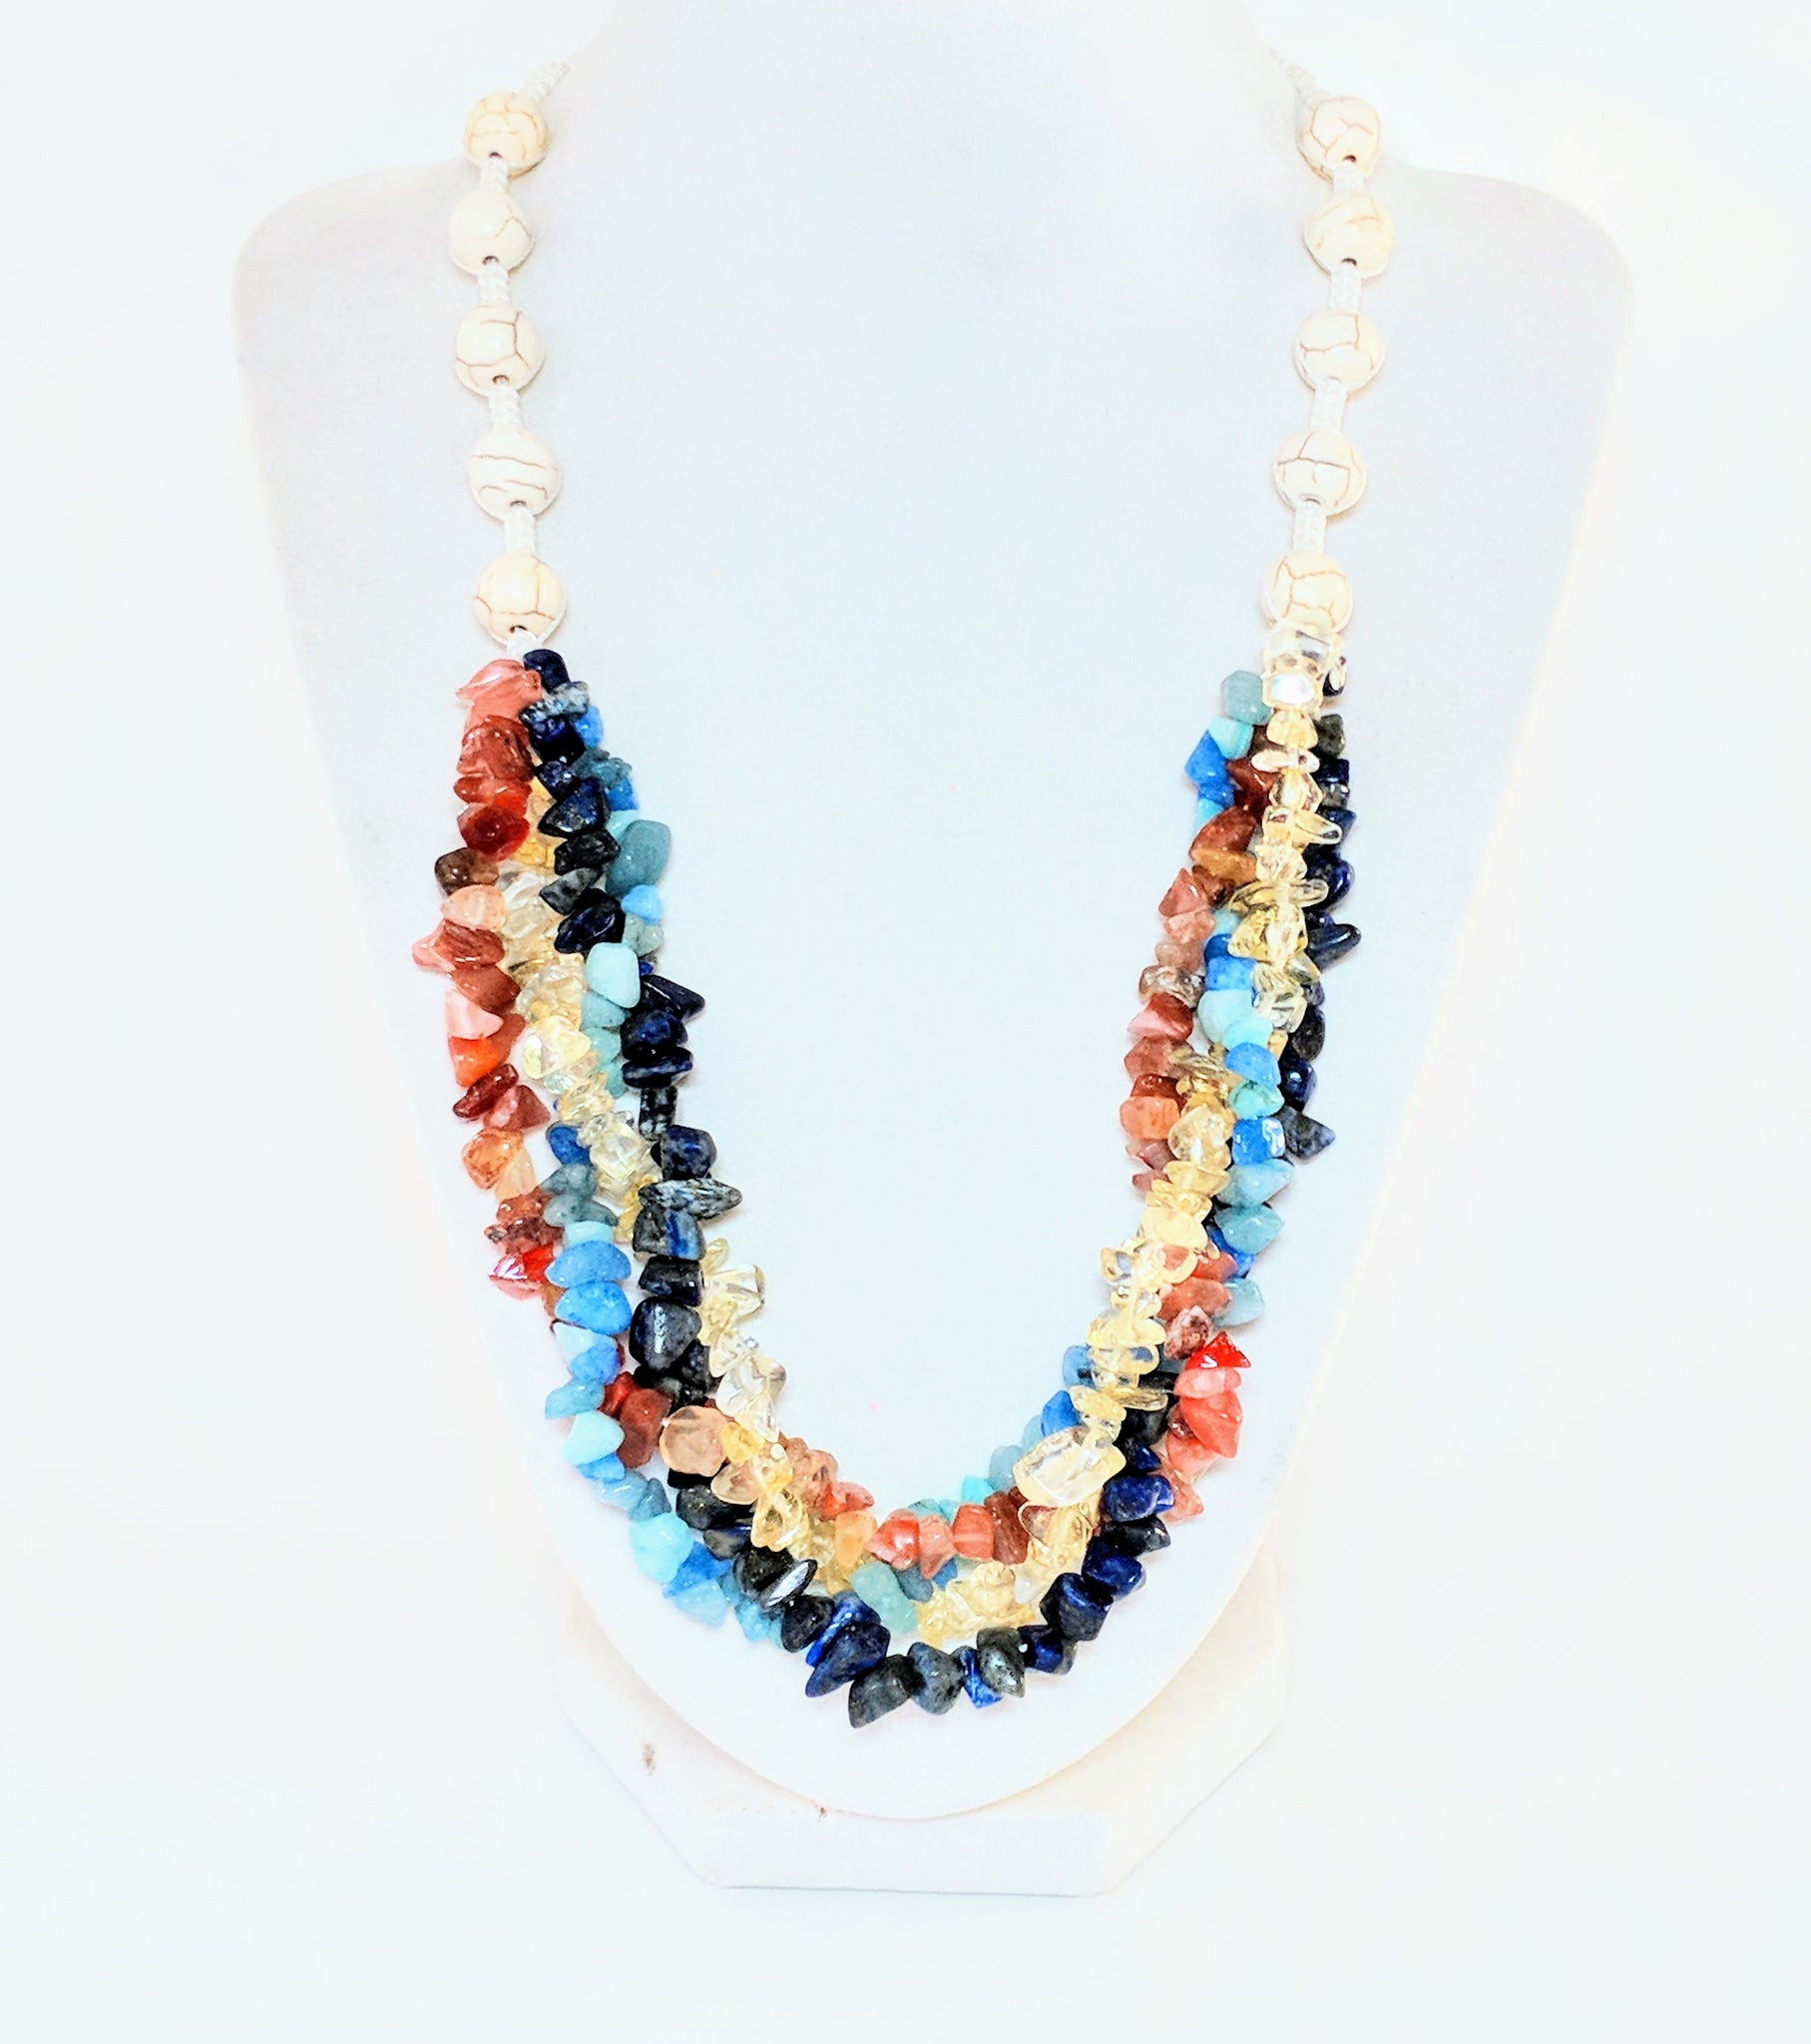 Hand-Knotted Hand-Braided Gemstone Chip and Macrame necklace